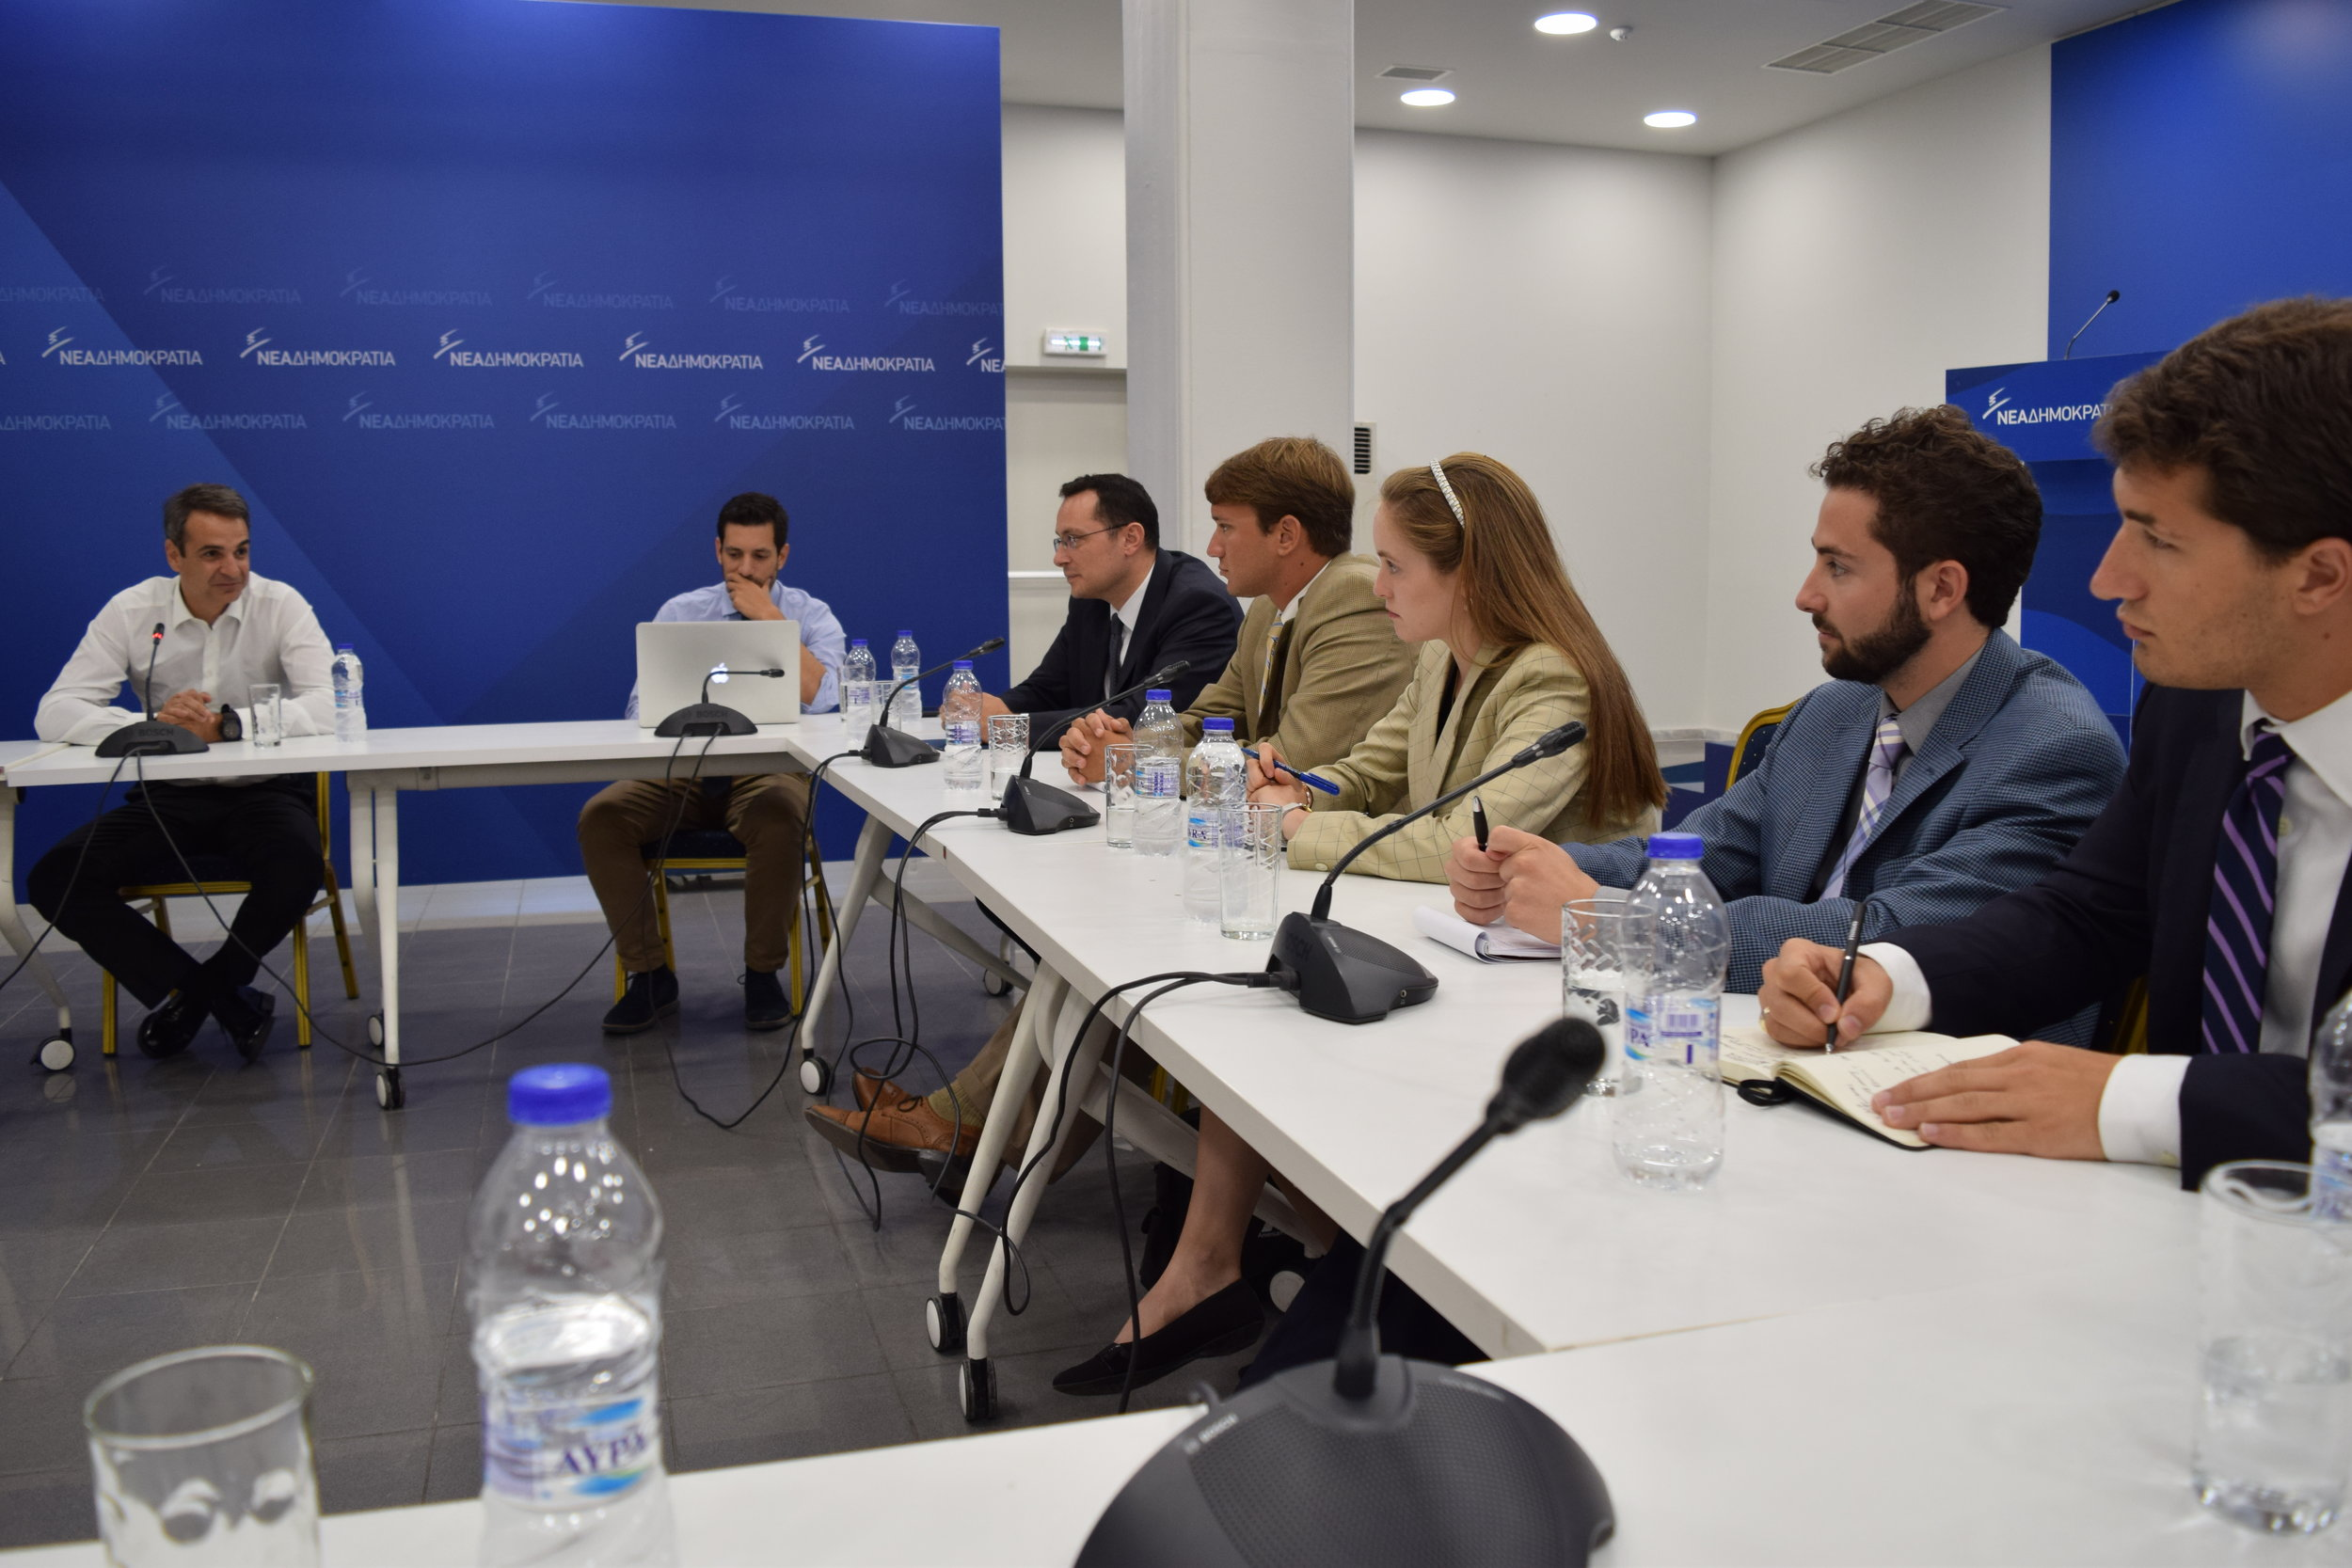 President of the New Democracy Party, Kyriakos Mitsotakis discusses his plans for Greece and its relationship with the United States.